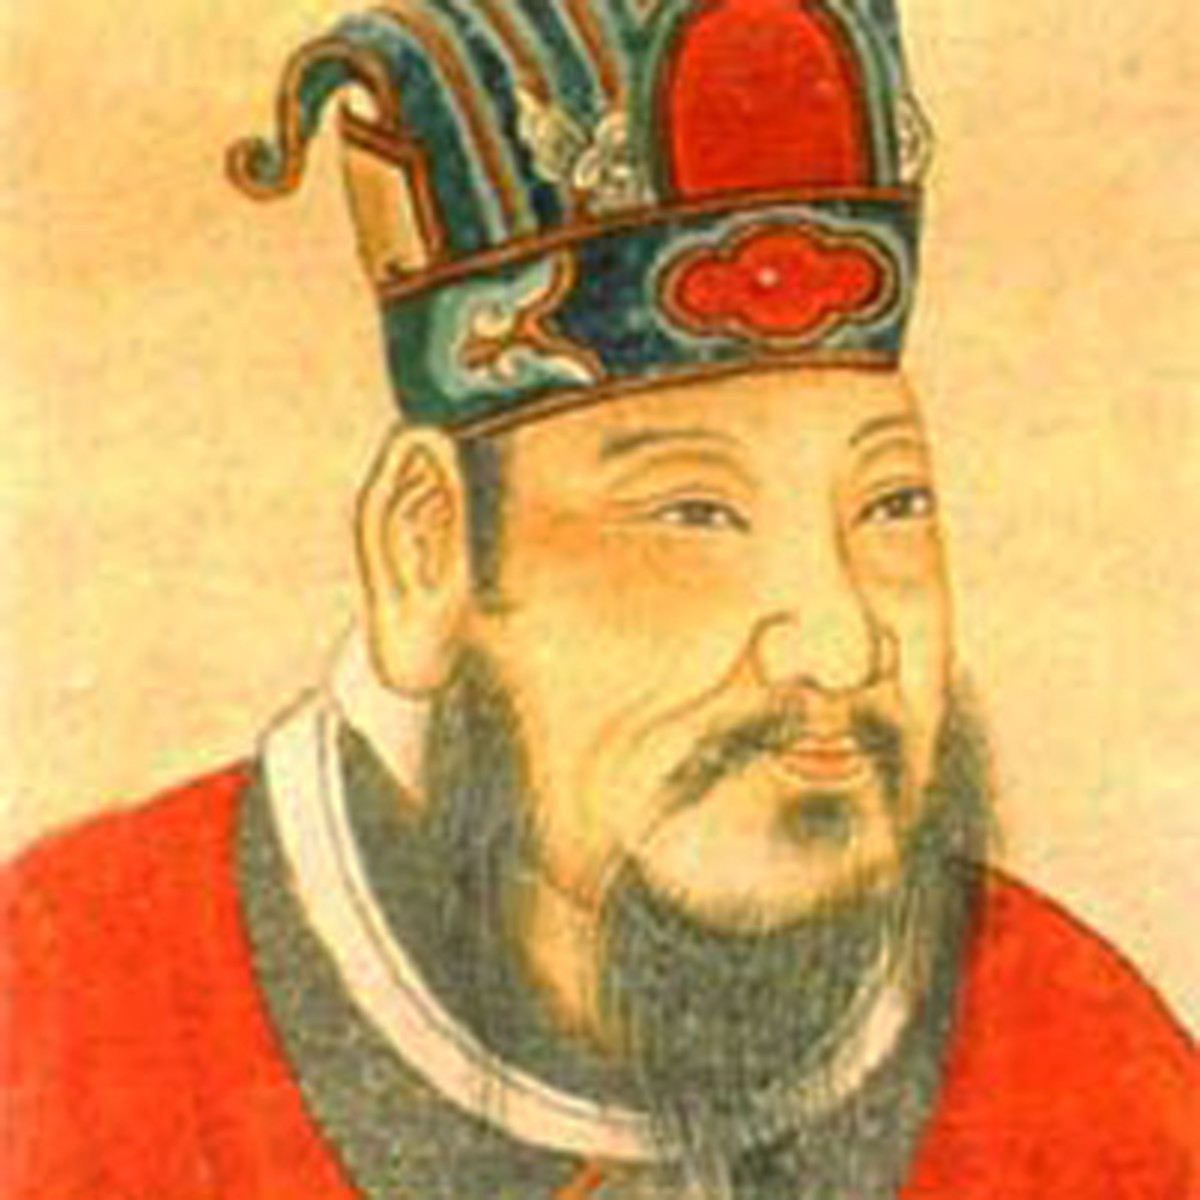 the life and rule of chinese emperor wu ti Emperor wu of han (30 june 156 bc – 29 march 87 bc), born liu che, courtesy name tong, was the seventh emperor of the han dynasty of china, ruling from 141–87 bc[3] his reign lasted 54 years — a record not broken until the reign of the kangxi emperor more than 1,800 years later.